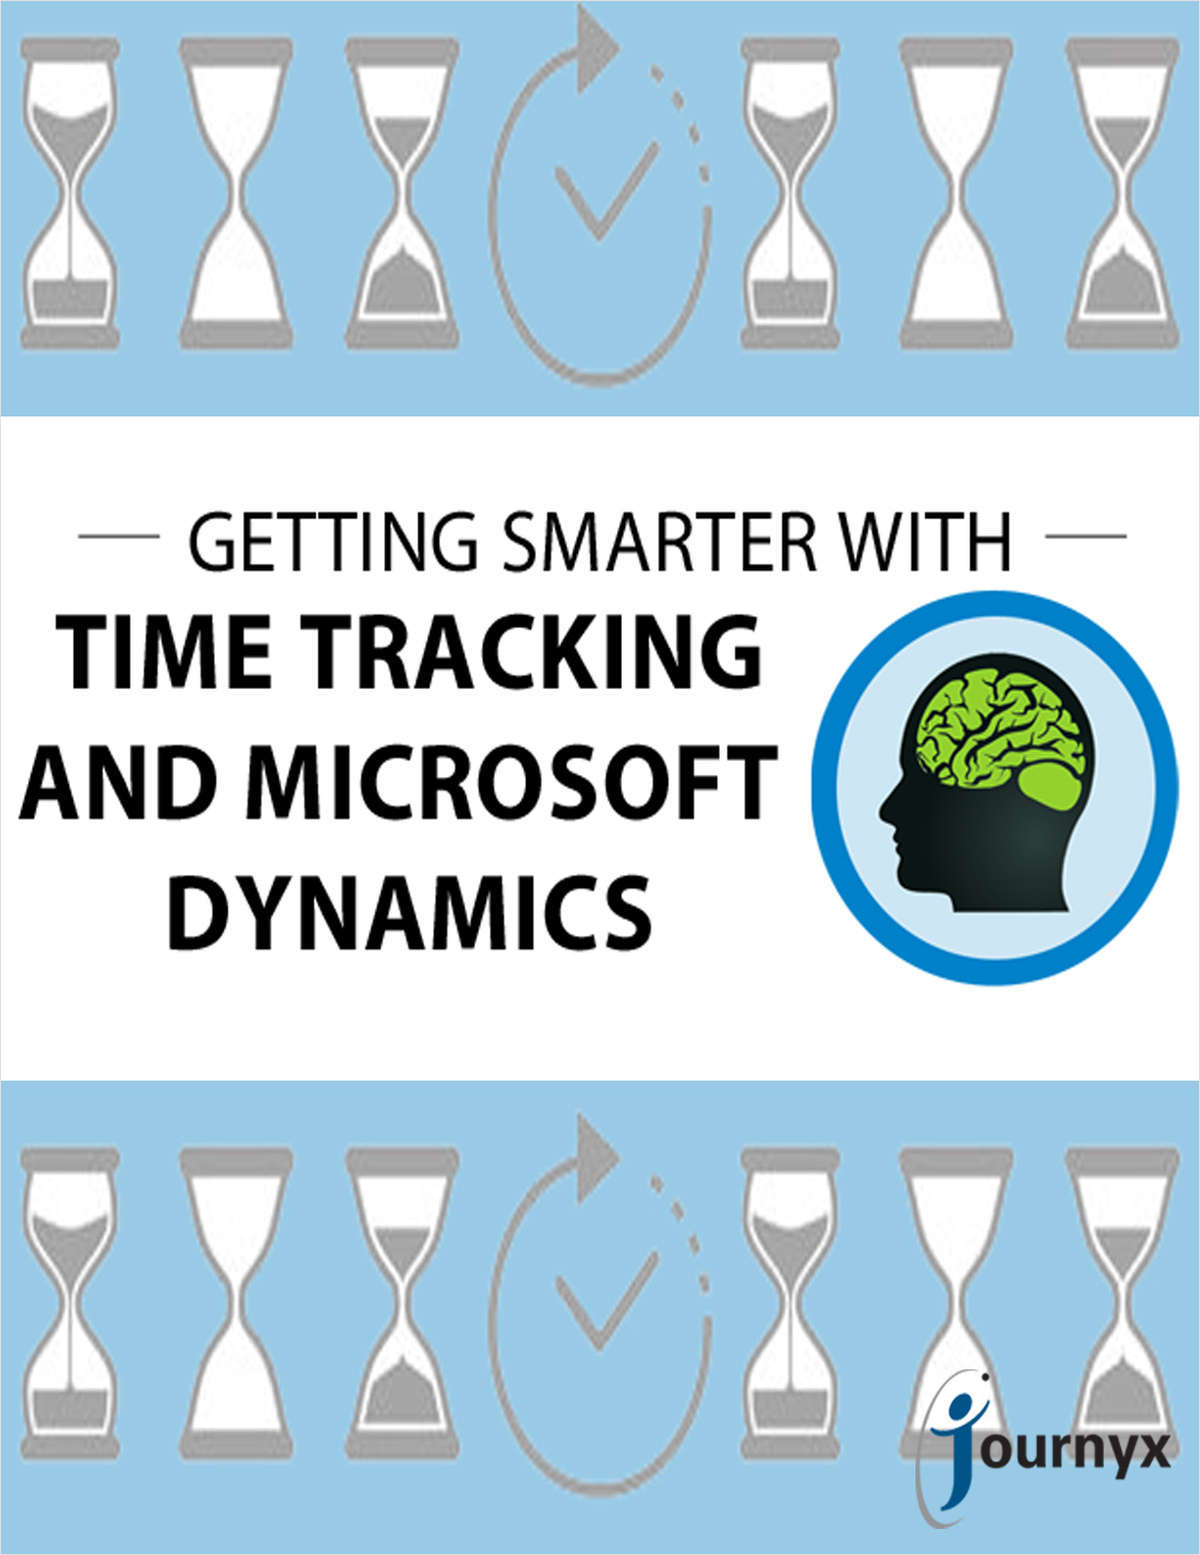 Getting Smarter with Time Tracking & Dynamics